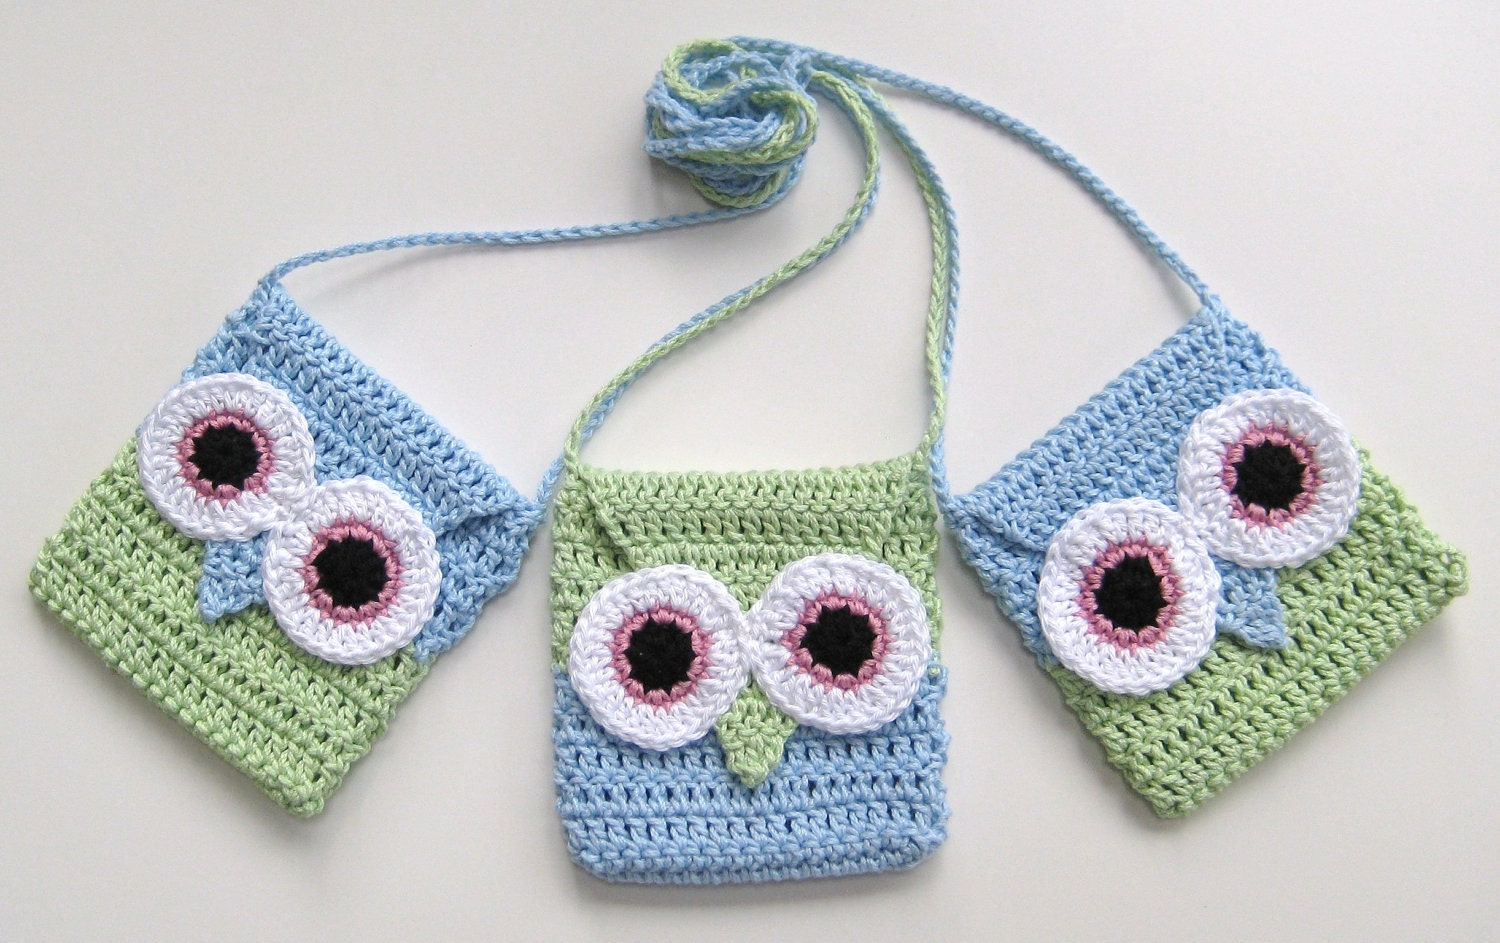 Crochet Owl Bag Pattern Free : Crochet Pattern Owl purse bag INSTANT DOWNLOAD by avondalepatterns